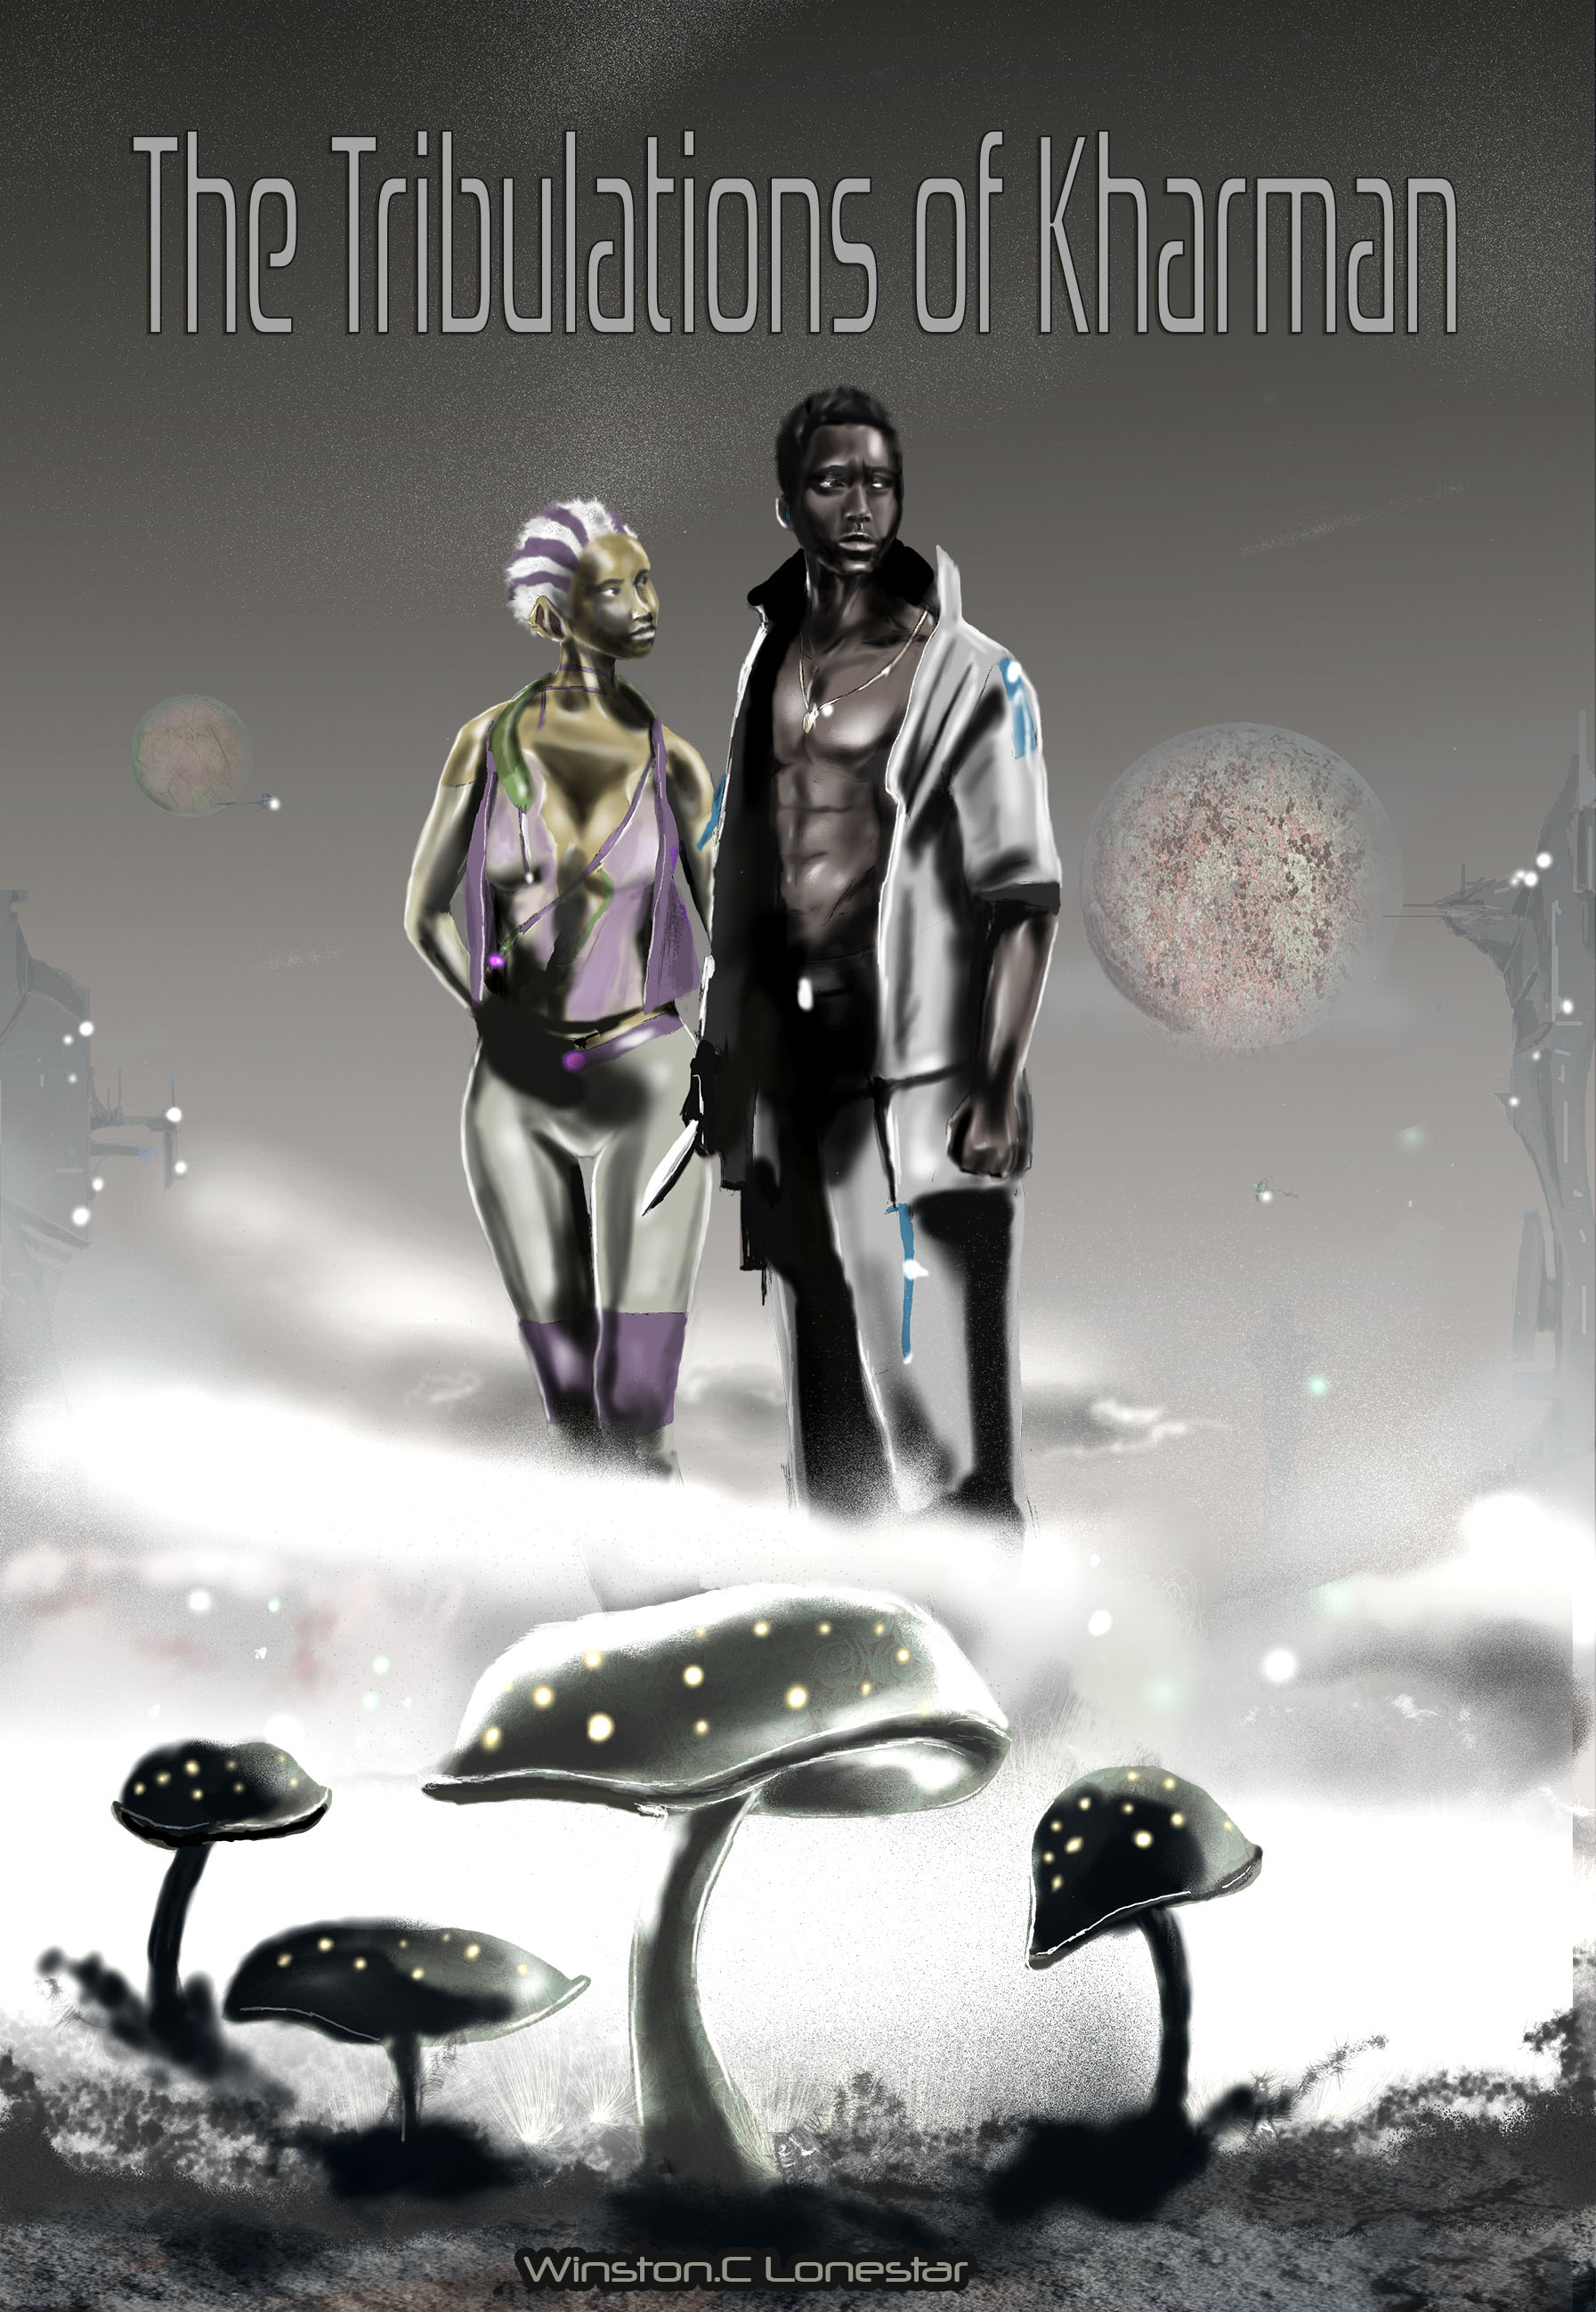 Book Cover, Sci-fi Fantasy book Cover, Black Sci-fi Fantasy, Sci-fi Art, Black Sci-fi Art, black illustration work